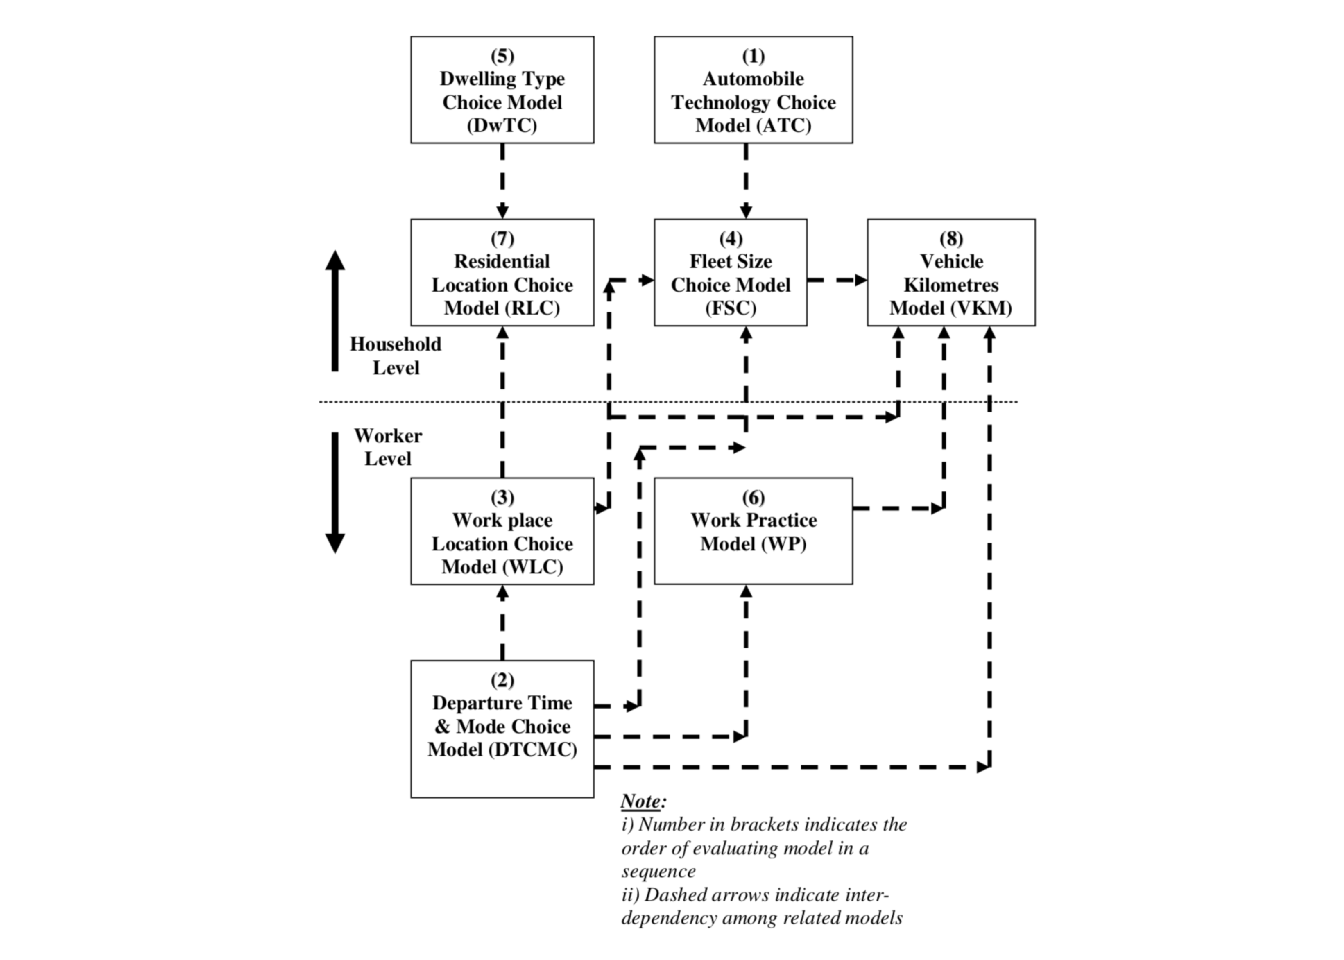 Overview of TRESIS model structure